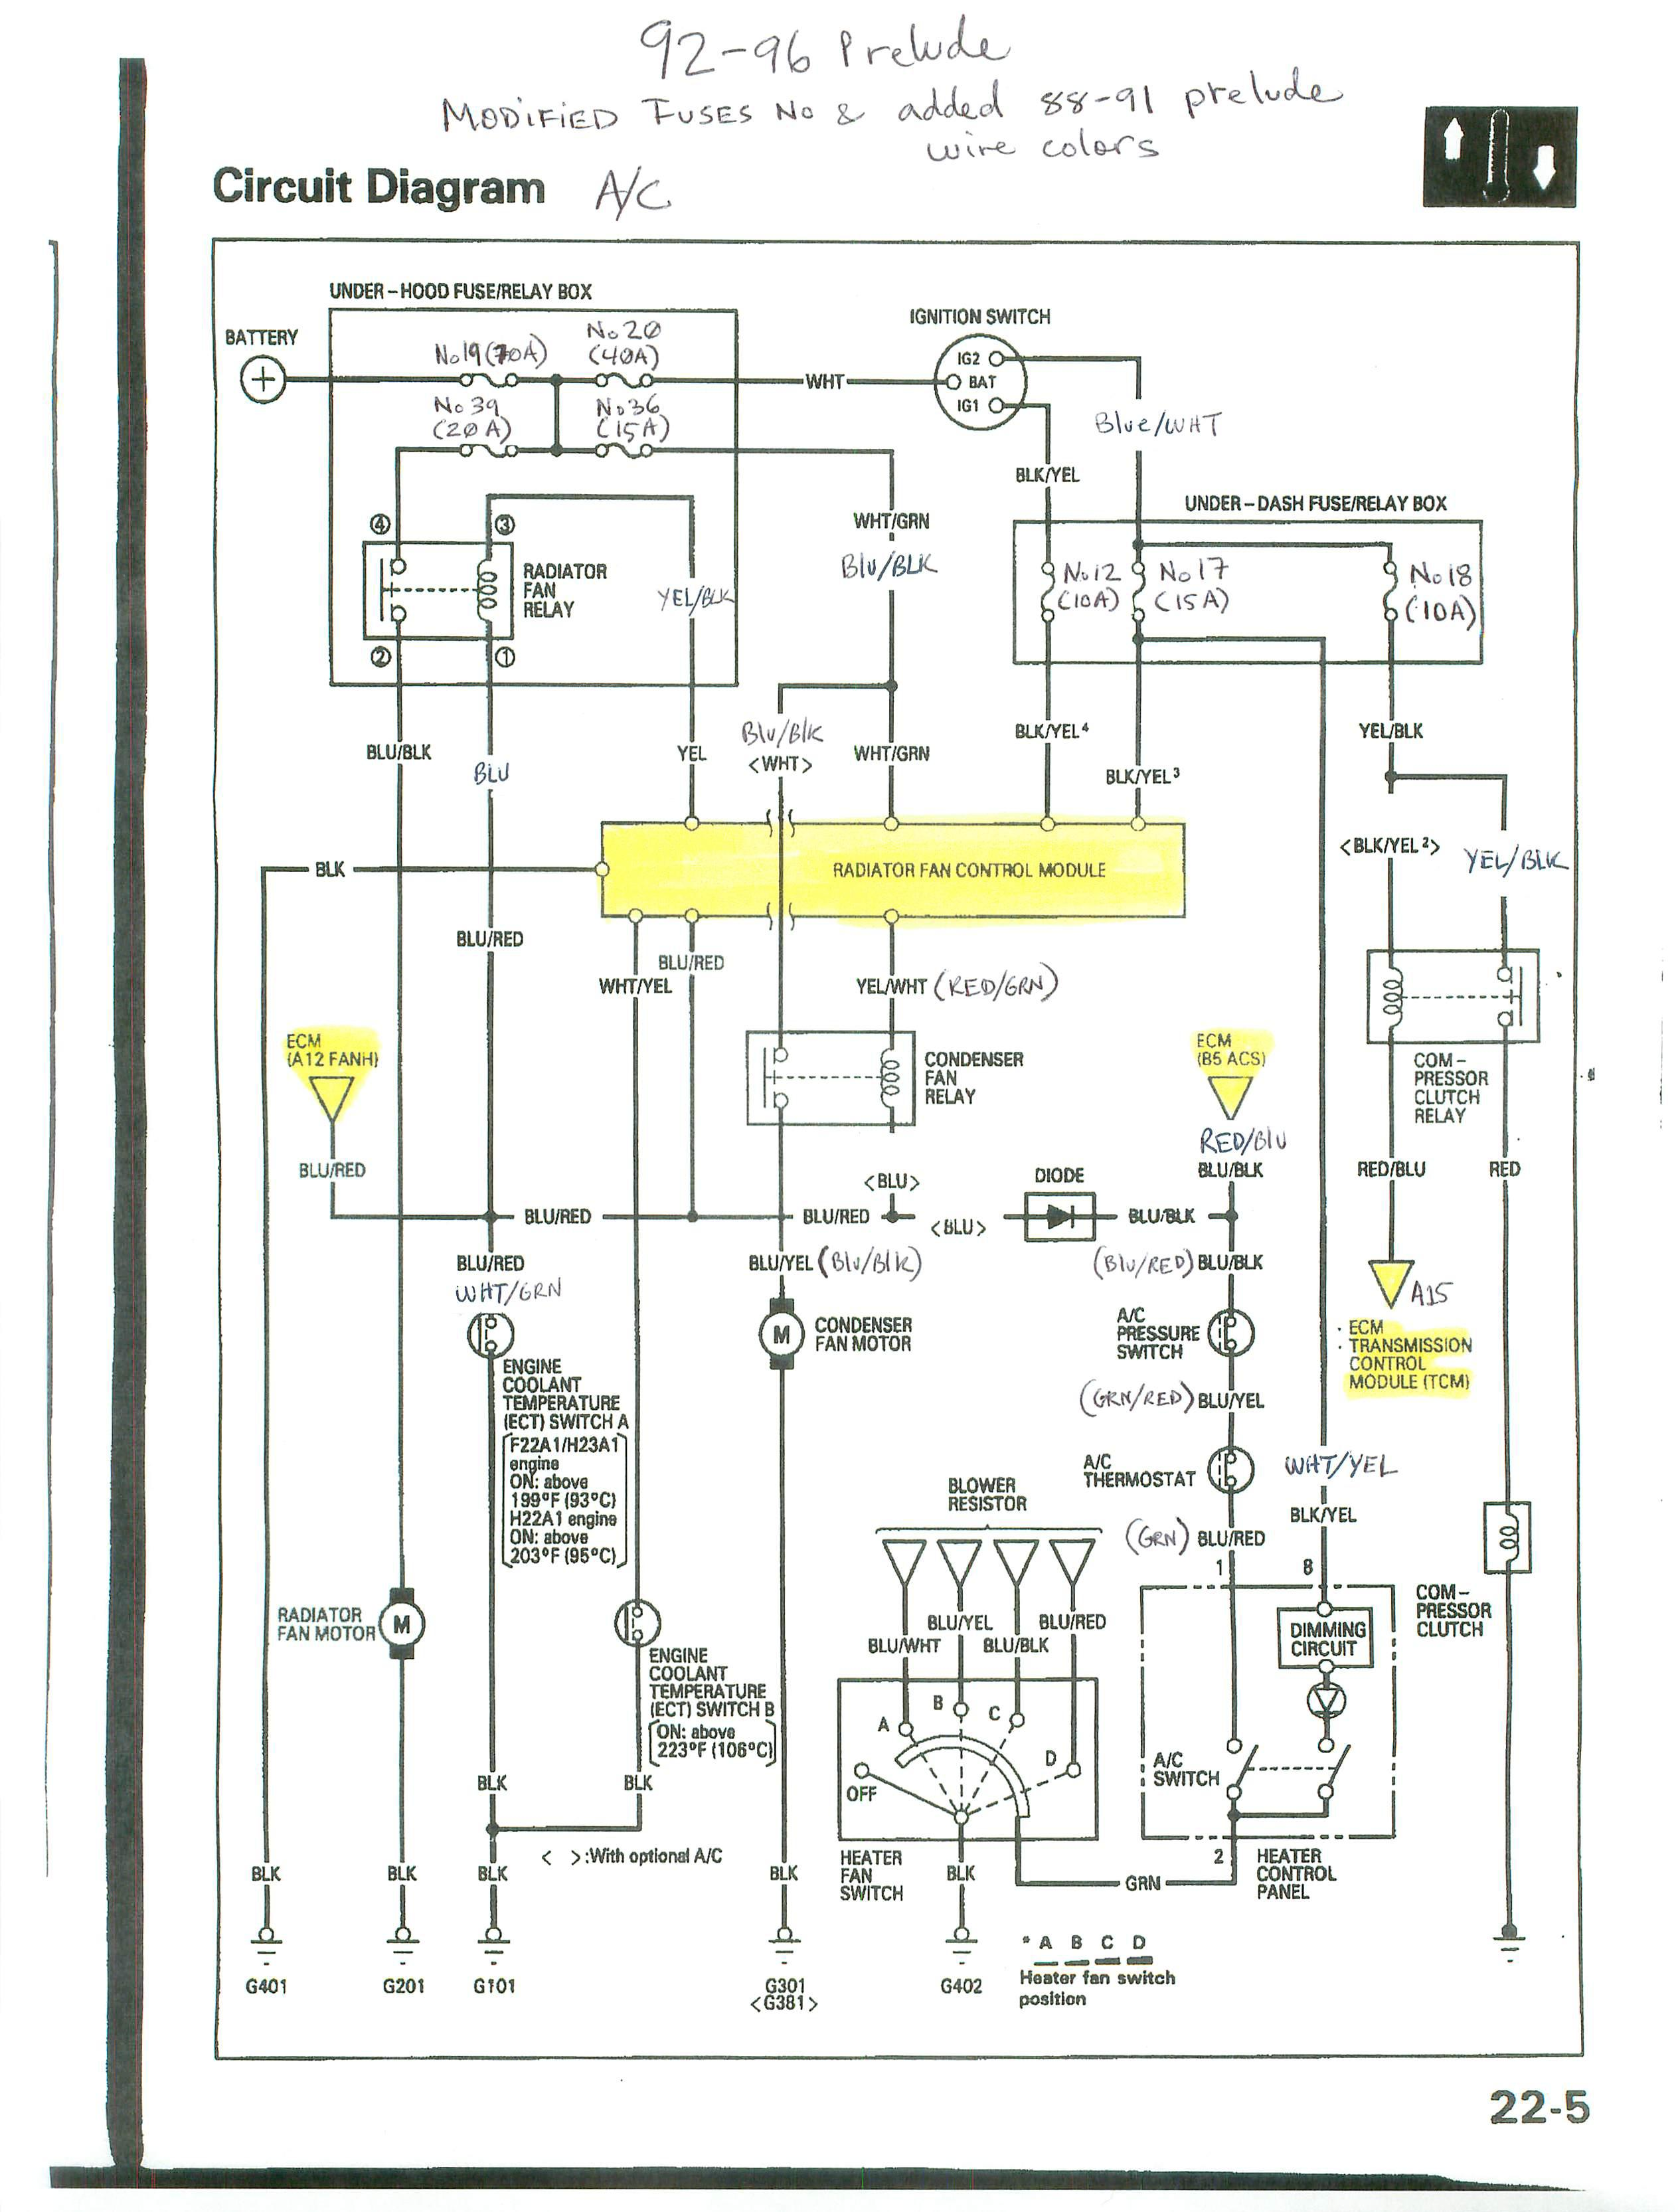 1992 P30 Wiring Diagram Manual Of 88 Fleetwood Get Free Image About 83